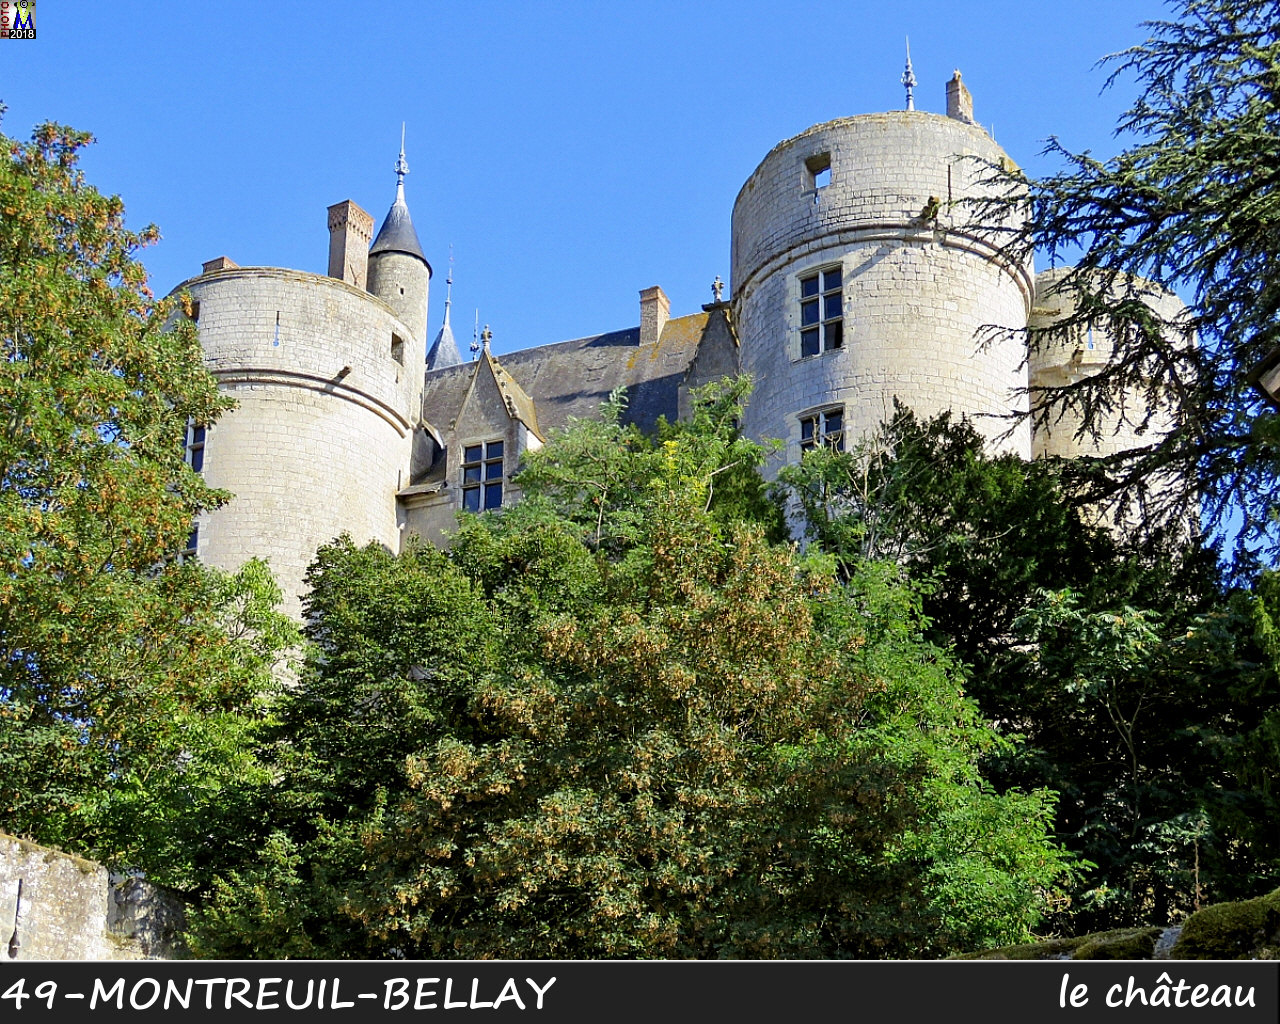 49MONTREUIL-BELLAY_chateau_1044.jpg